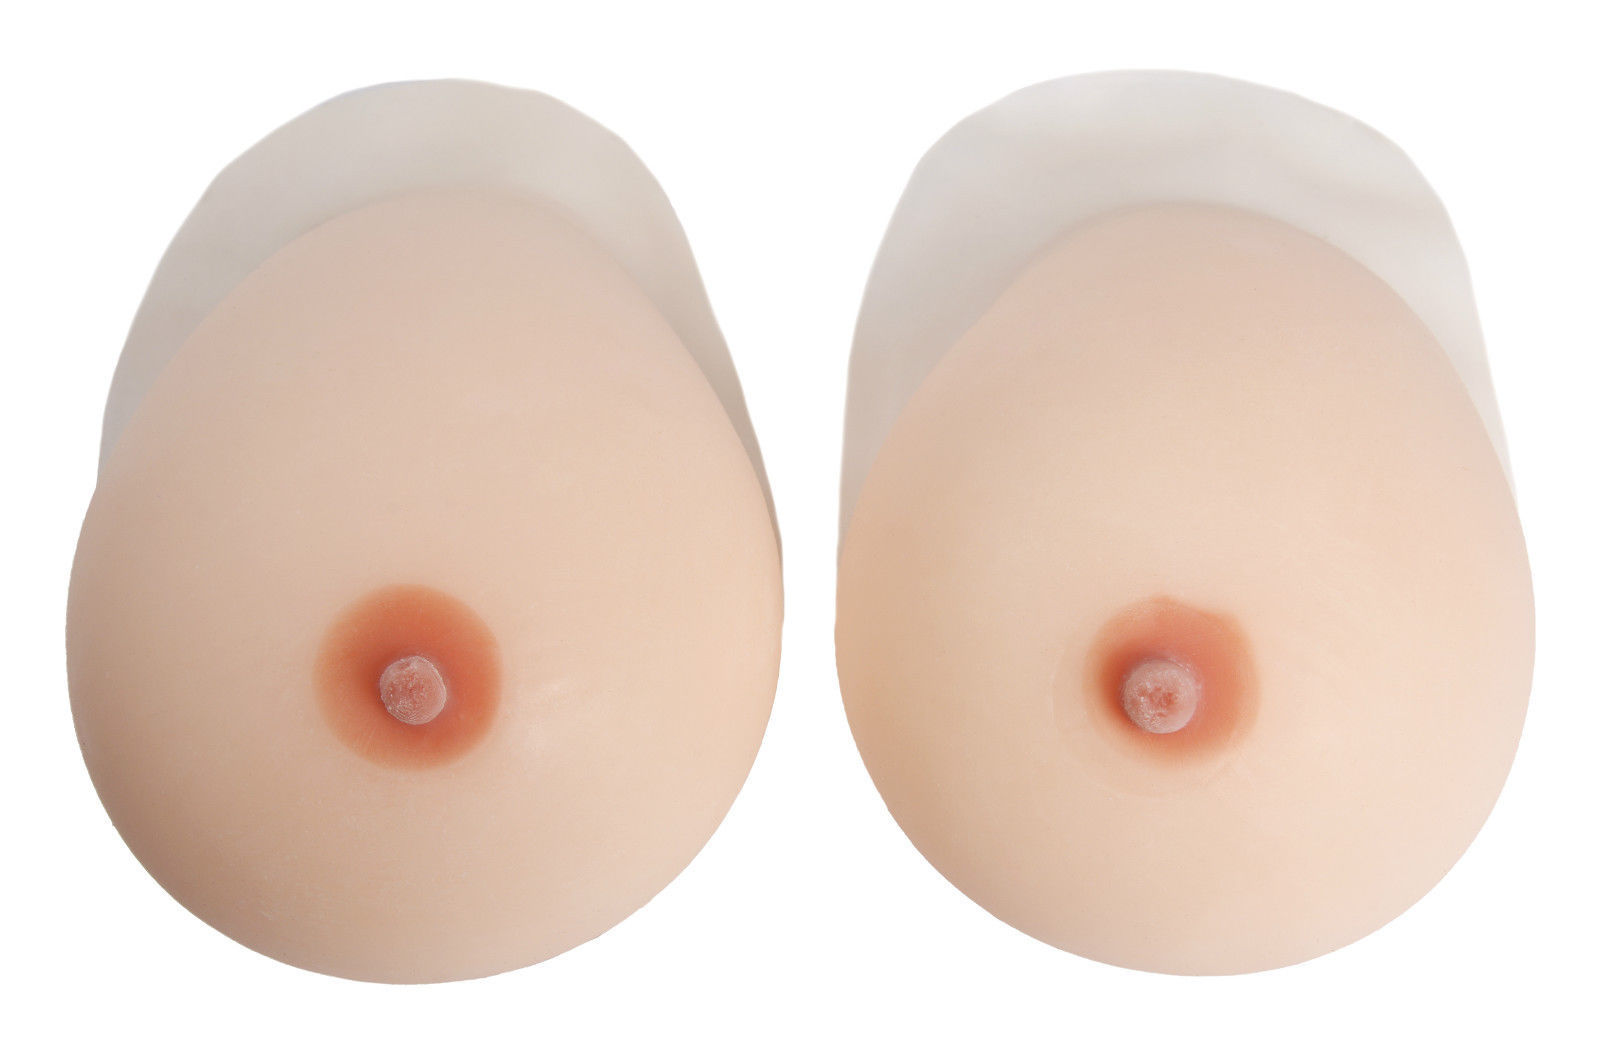 Primary image for Isabella Real Tear Drop Silicone Breast Form Cross dresser Sz 5(M)